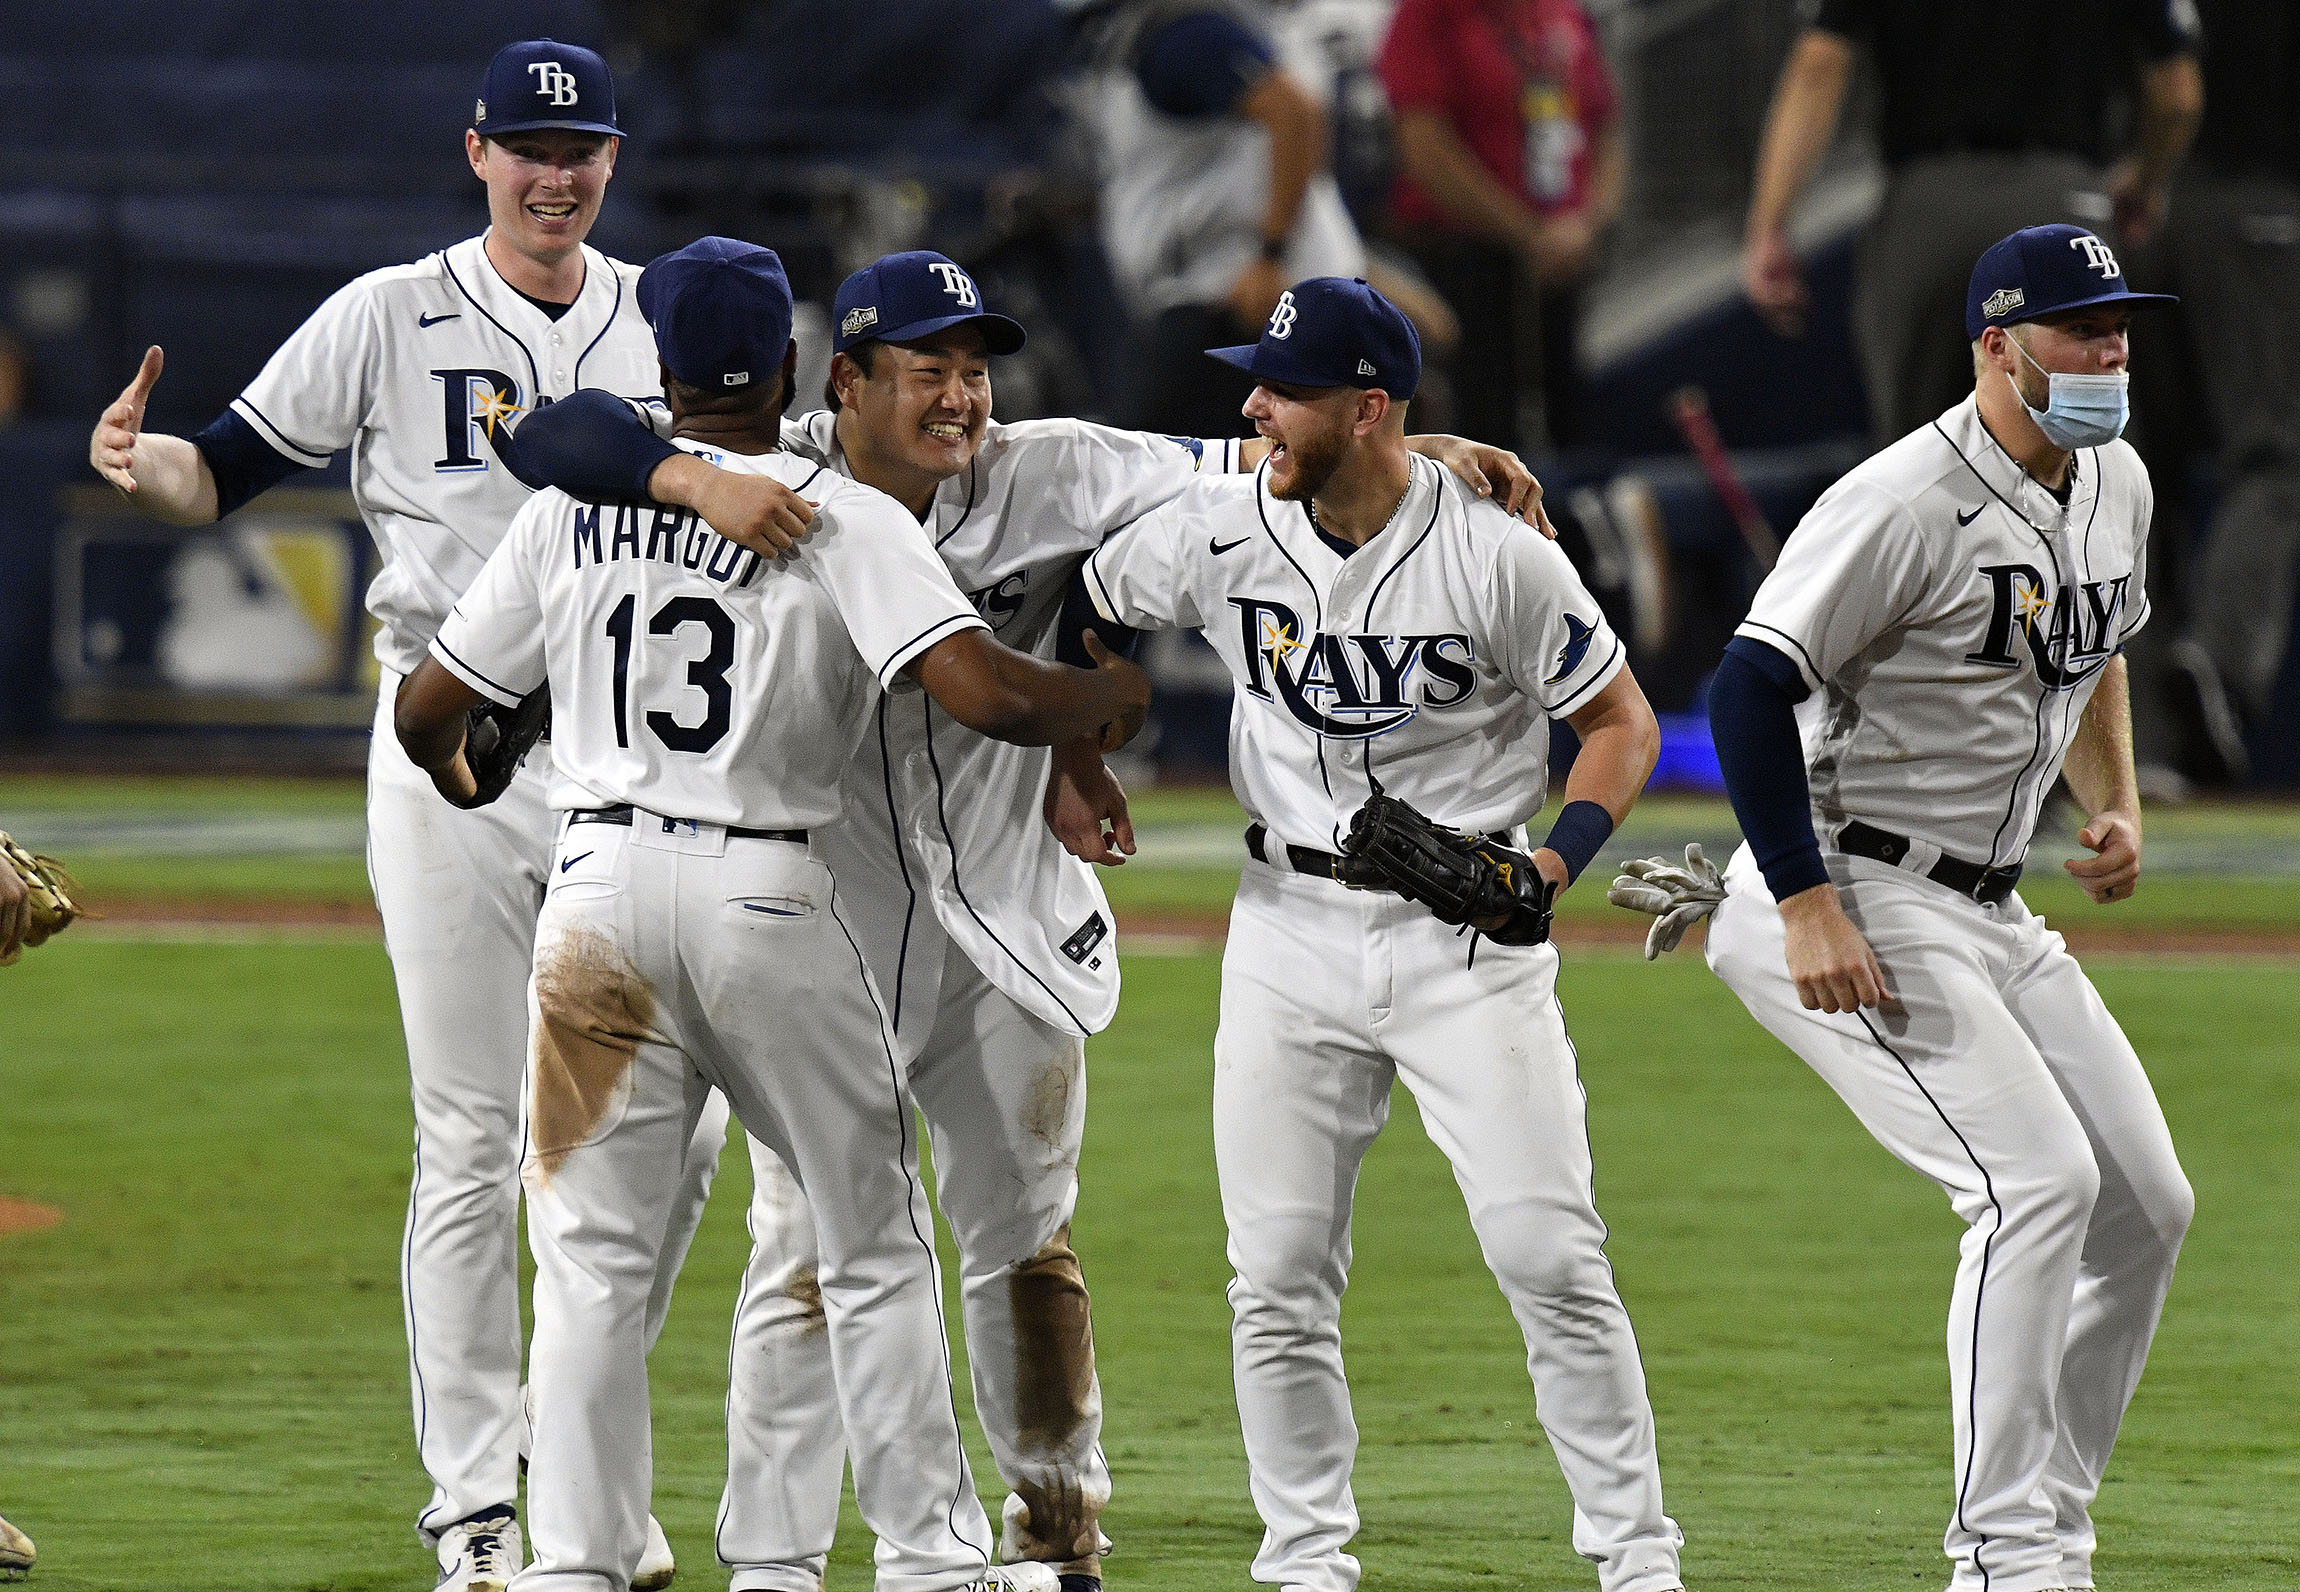 Tampa Bay Rays are headed to the World Series after winning the American League pennant